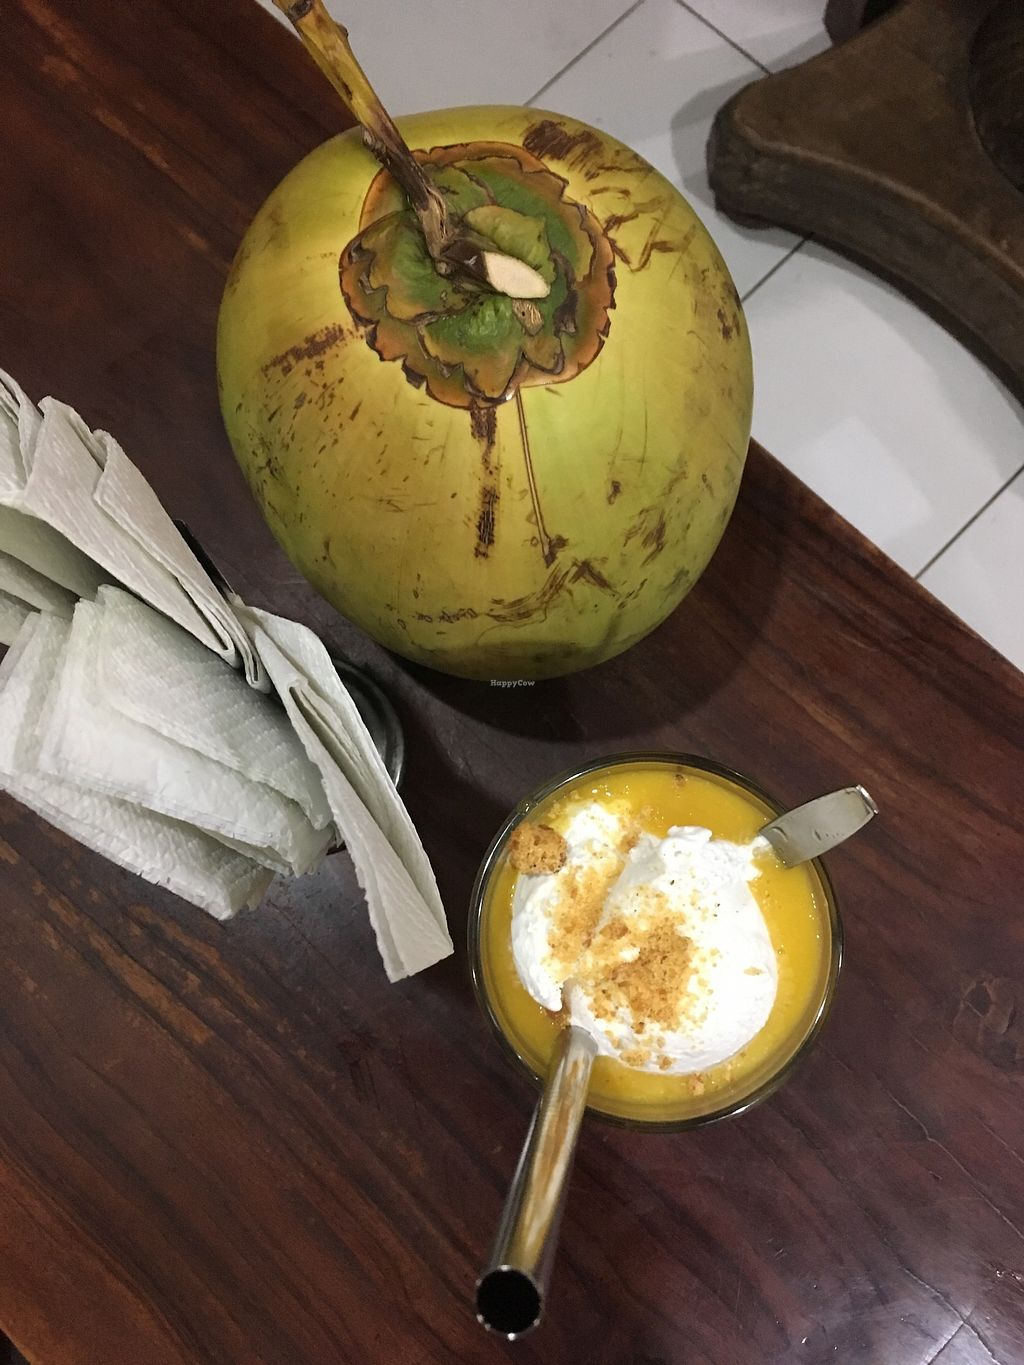 """Photo of Tukies Cafe  by <a href=""""/members/profile/jojoinbrighton"""">jojoinbrighton</a> <br/>Coco mango ice cream float <br/> August 15, 2017  - <a href='/contact/abuse/image/55170/292774'>Report</a>"""